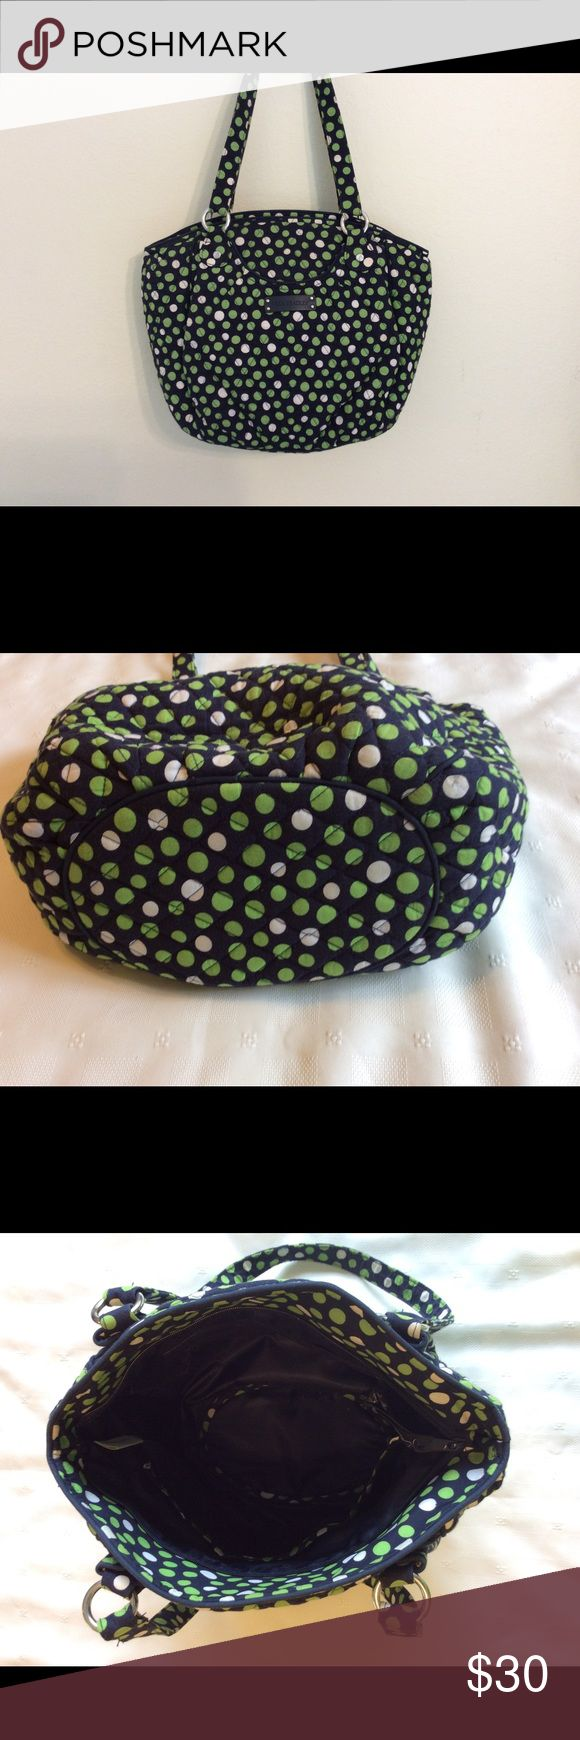 "Bright and happy Vera Bradley tote bag.  EUC Vera Bradley Lucky Dots Glenna tote bag.  Nice and roomy with wide bottom.  Approx 12"" X 15"" without handles.  Navy background with lime green and white polka dots. Vera Bradley Bags"